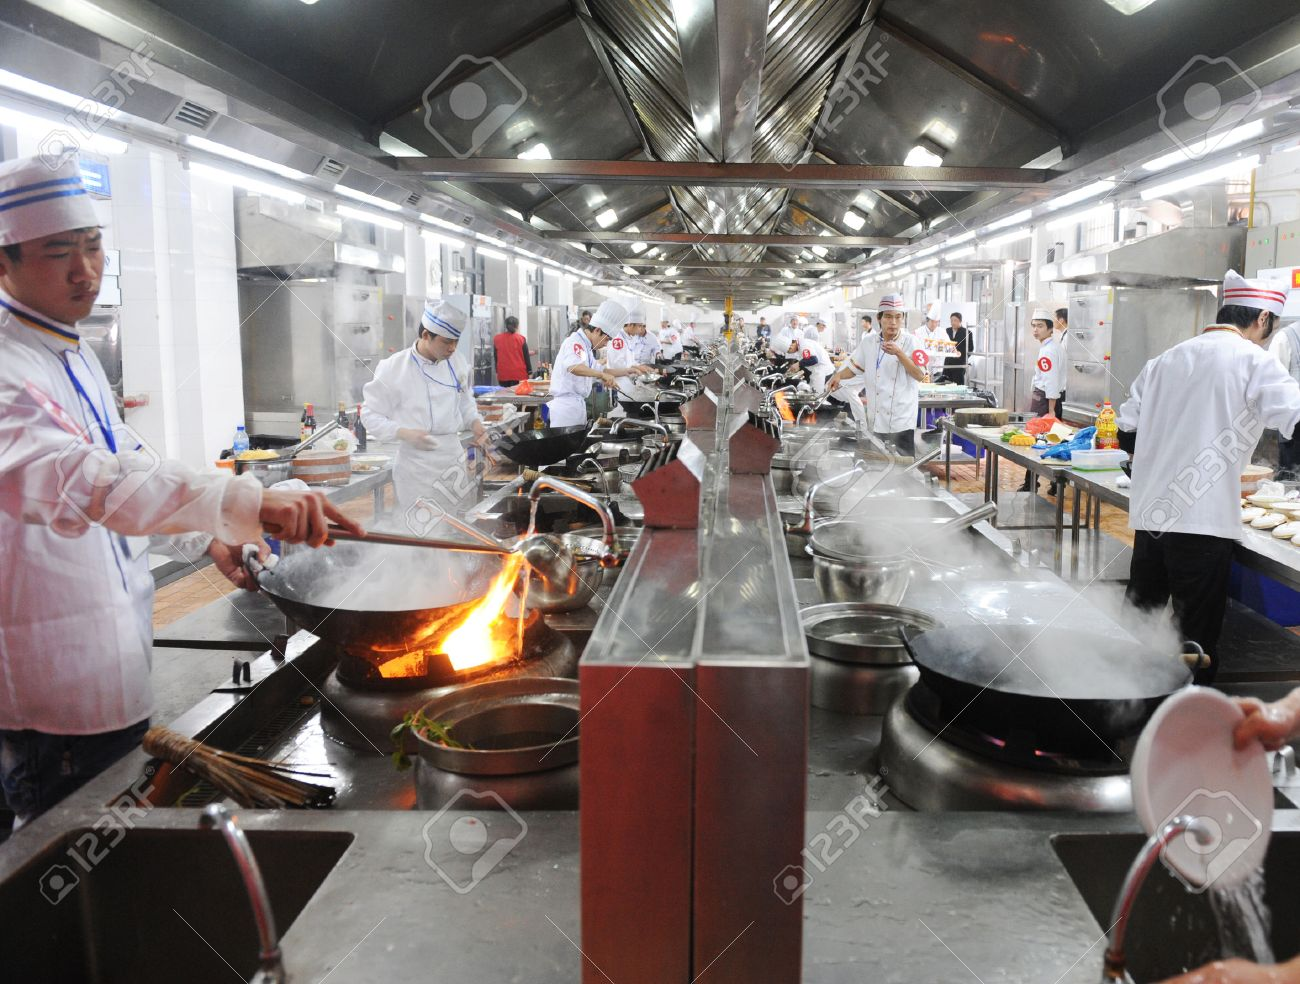 Fujian-April 14, 2010.  Group of chefs working together in a Chinese restaurant kitchen, Fujian province, China. Stock Photo - 37181499